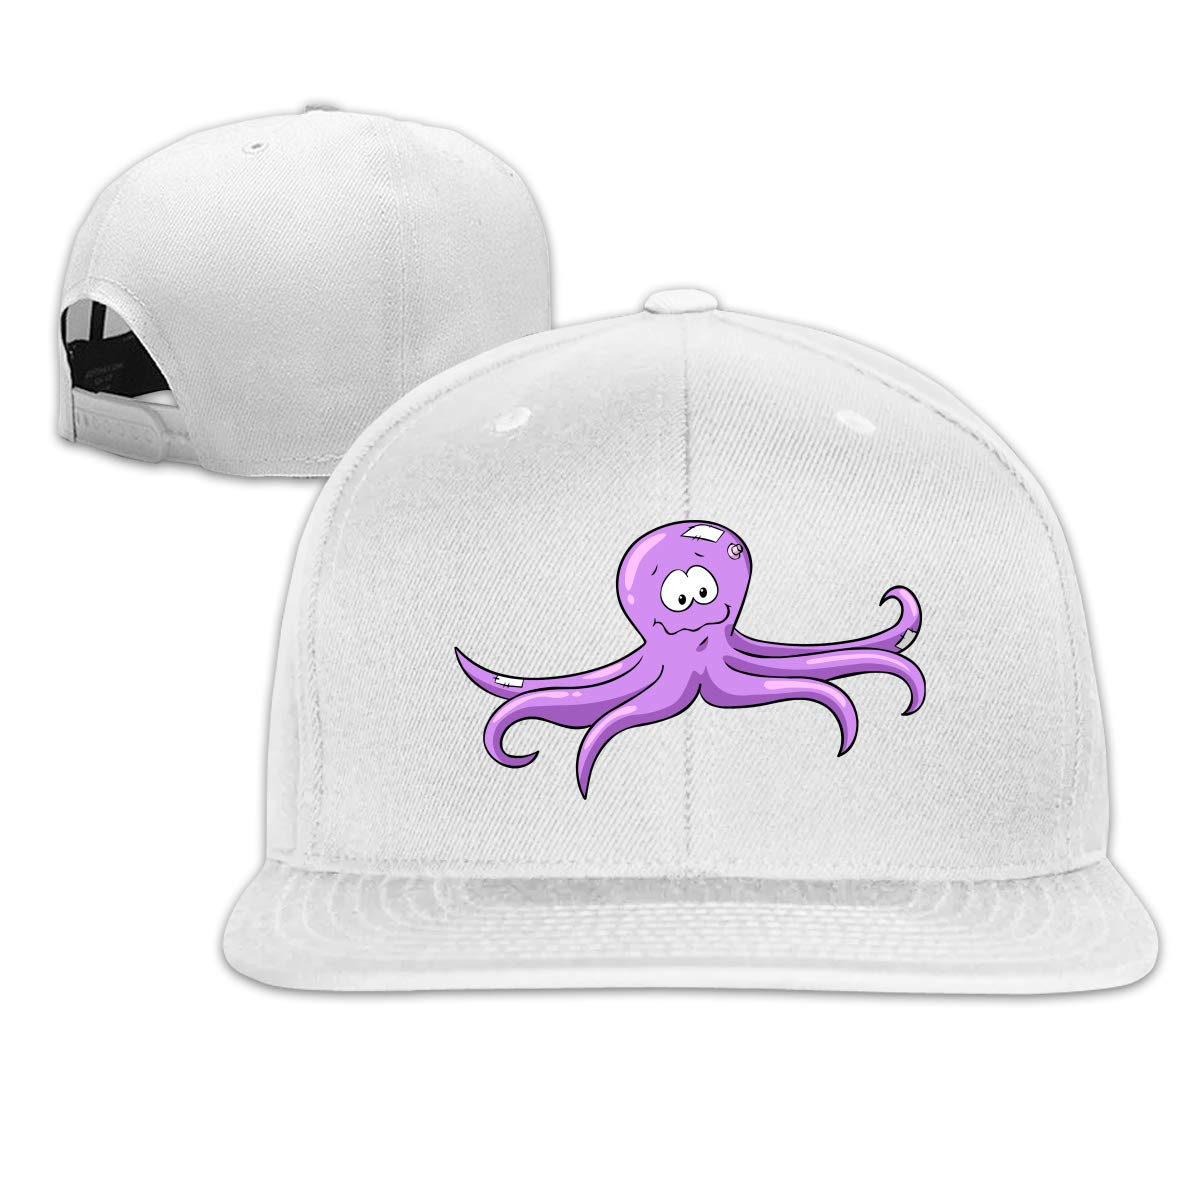 Xieadery Octopus Flat Brim Baseball Cap Adjustable Snapback Trucker Hat Caps Hip Hop Hat